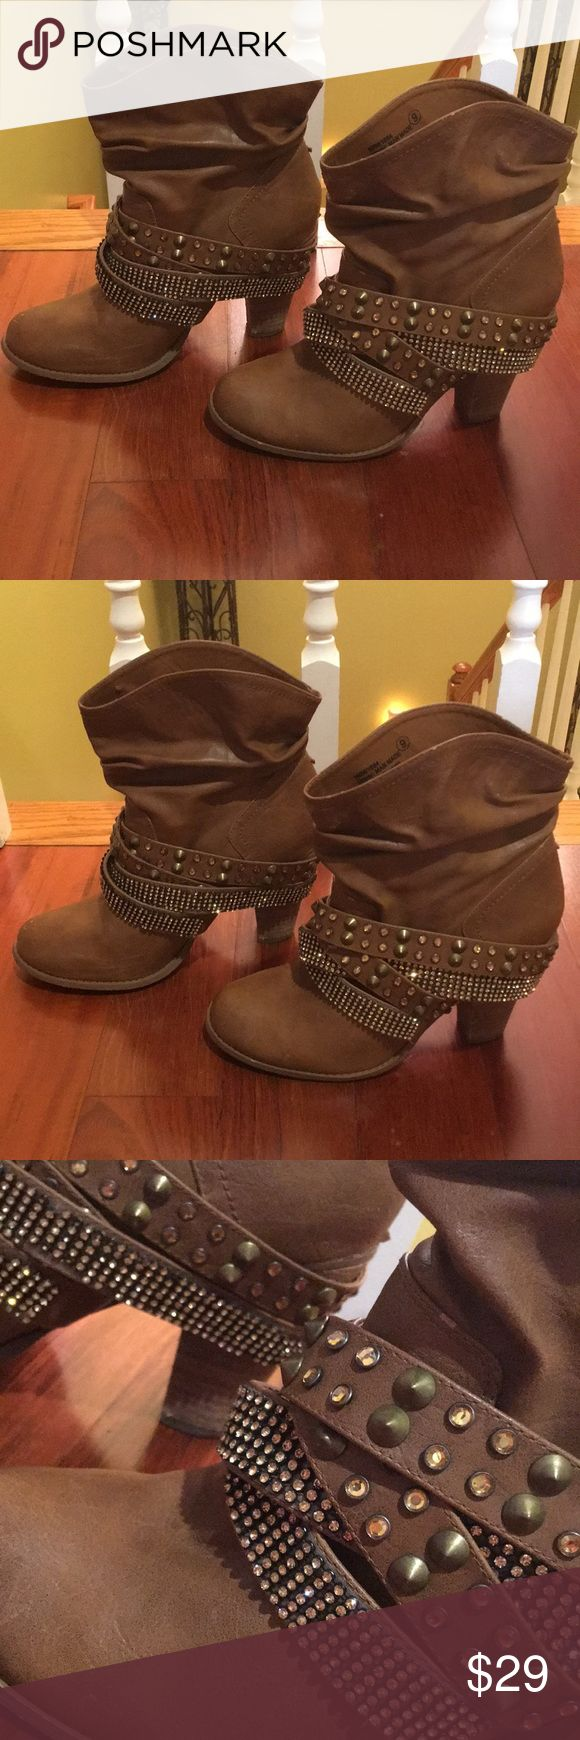 Jeweled Ankle Boots size 10 Jeweled Ankle Boots size 10/women's. Worn a couple of times. EUC overall great condition. Beautiful Boots with lots of flare. Brand Not Rated. Camel colored tan. Offers will be considered. Get these while you can, these boots will sell quickly. boutique Shoes Ankle Boots & Booties